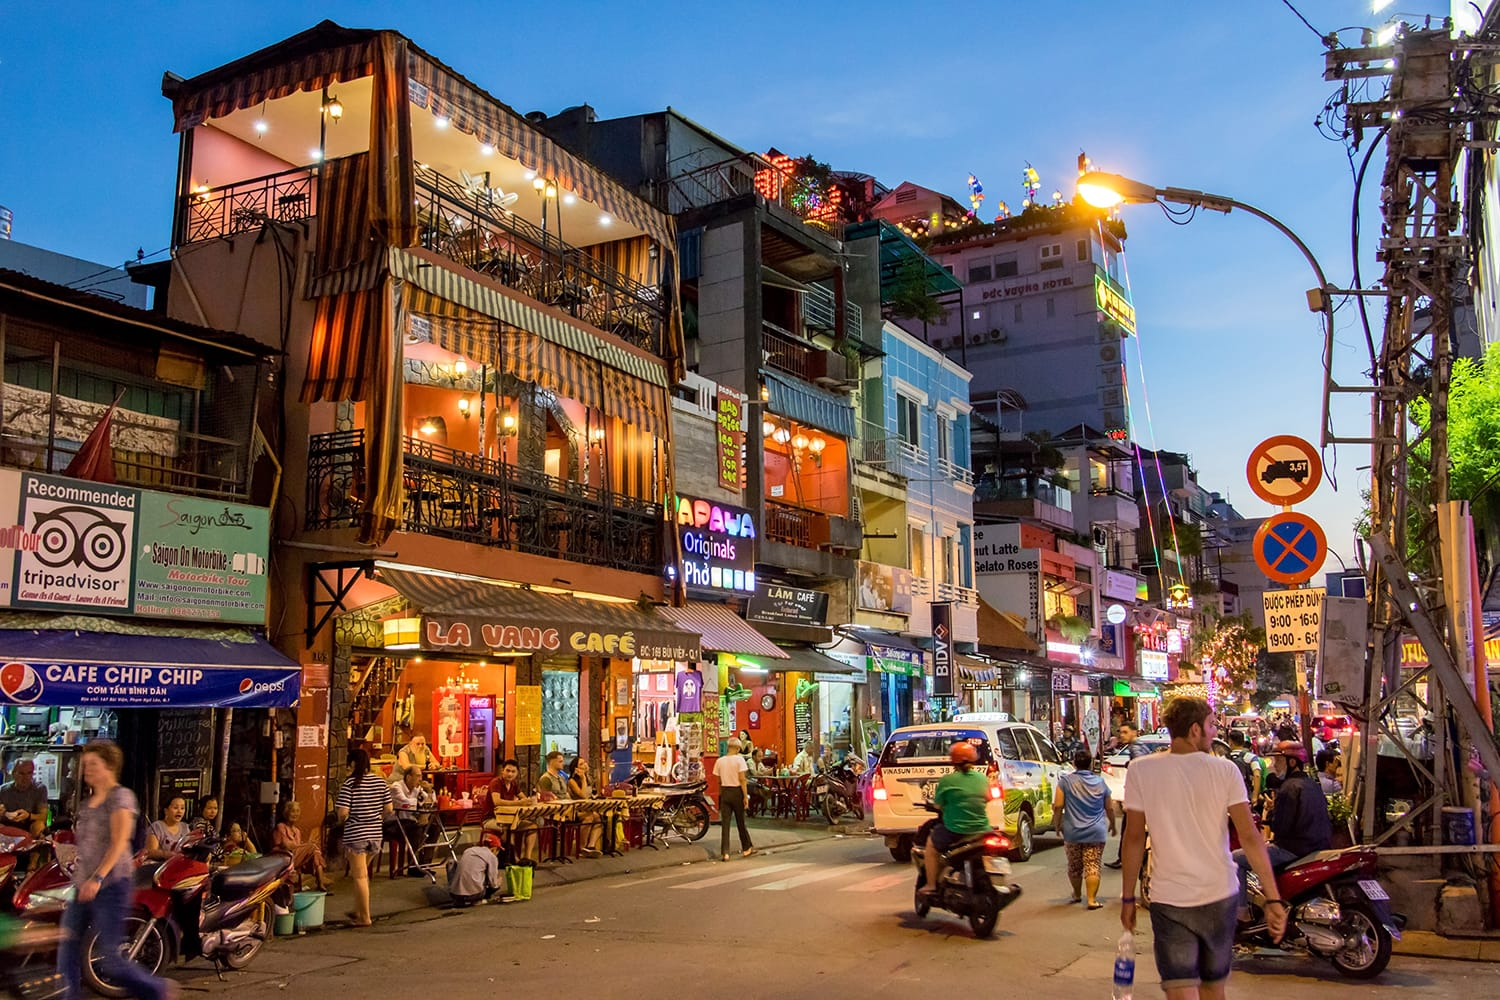 Evening Street with bars and pubs in the center of Ho Chi Minh city, Vietnam